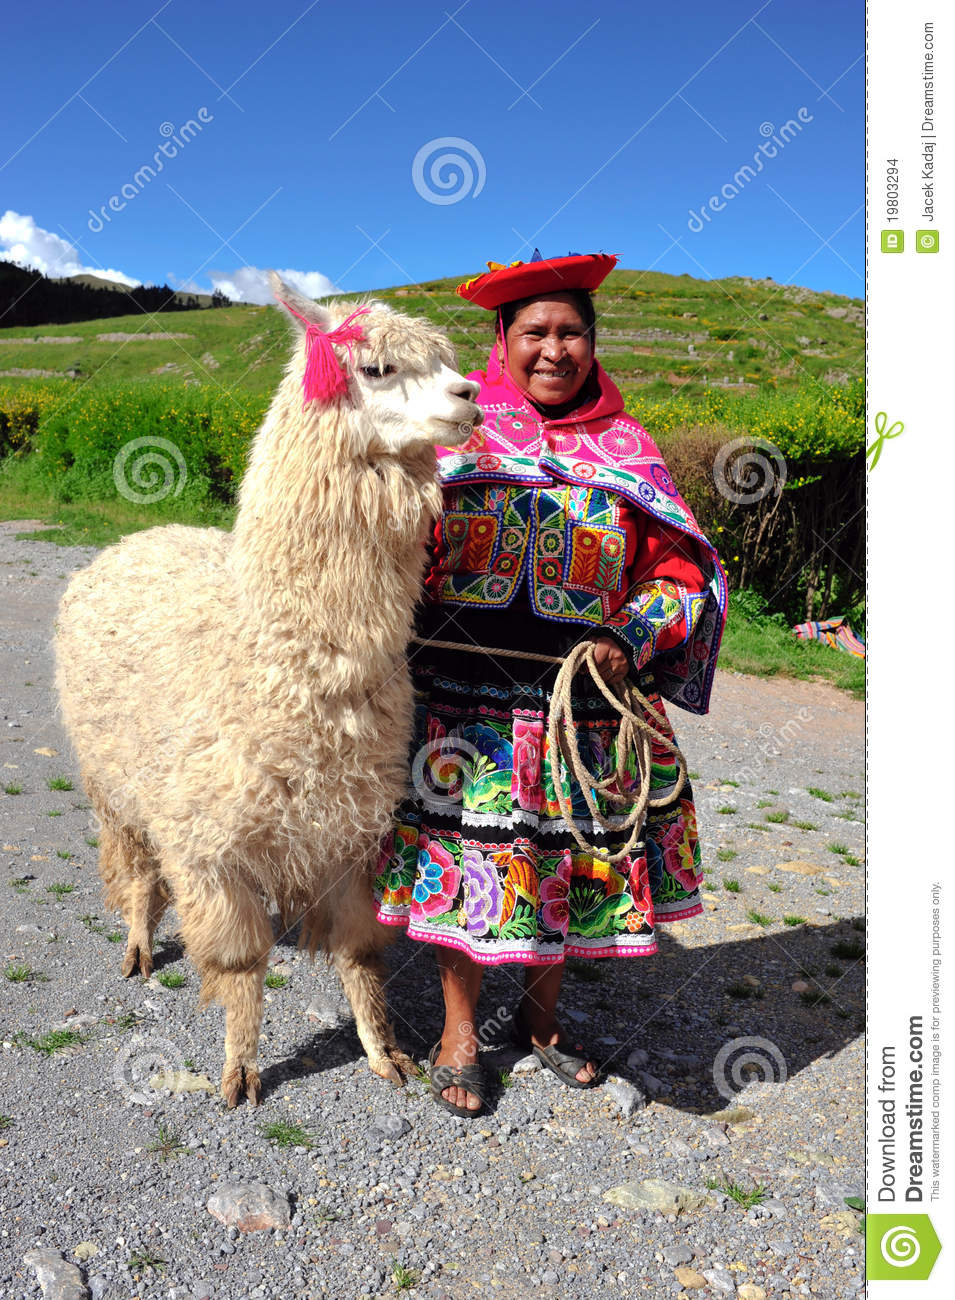 Peruvian Women Traditional Dress Lama Photos - Free & Royalty-Free Stock  Photos from Dreamstime